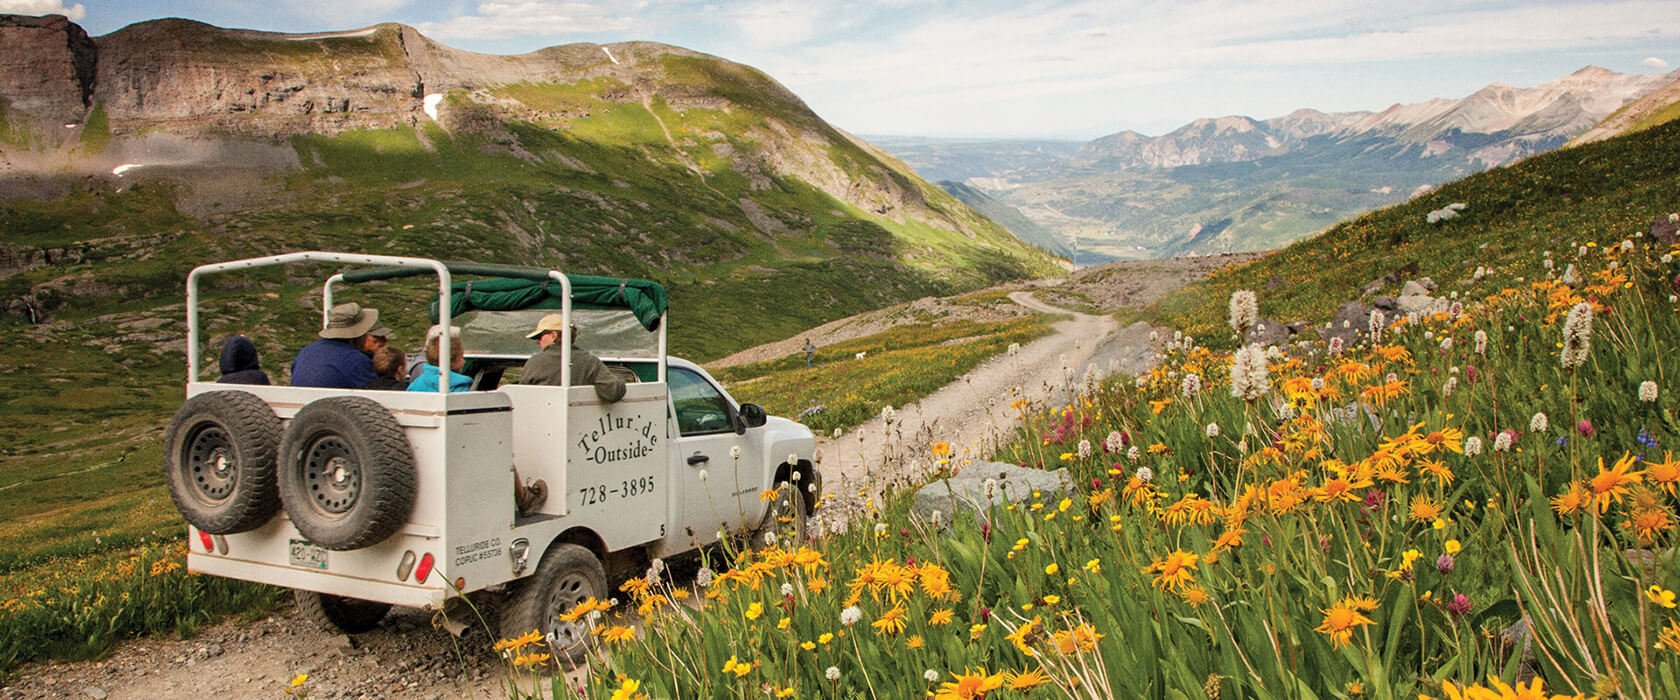 telluride-guided-tours